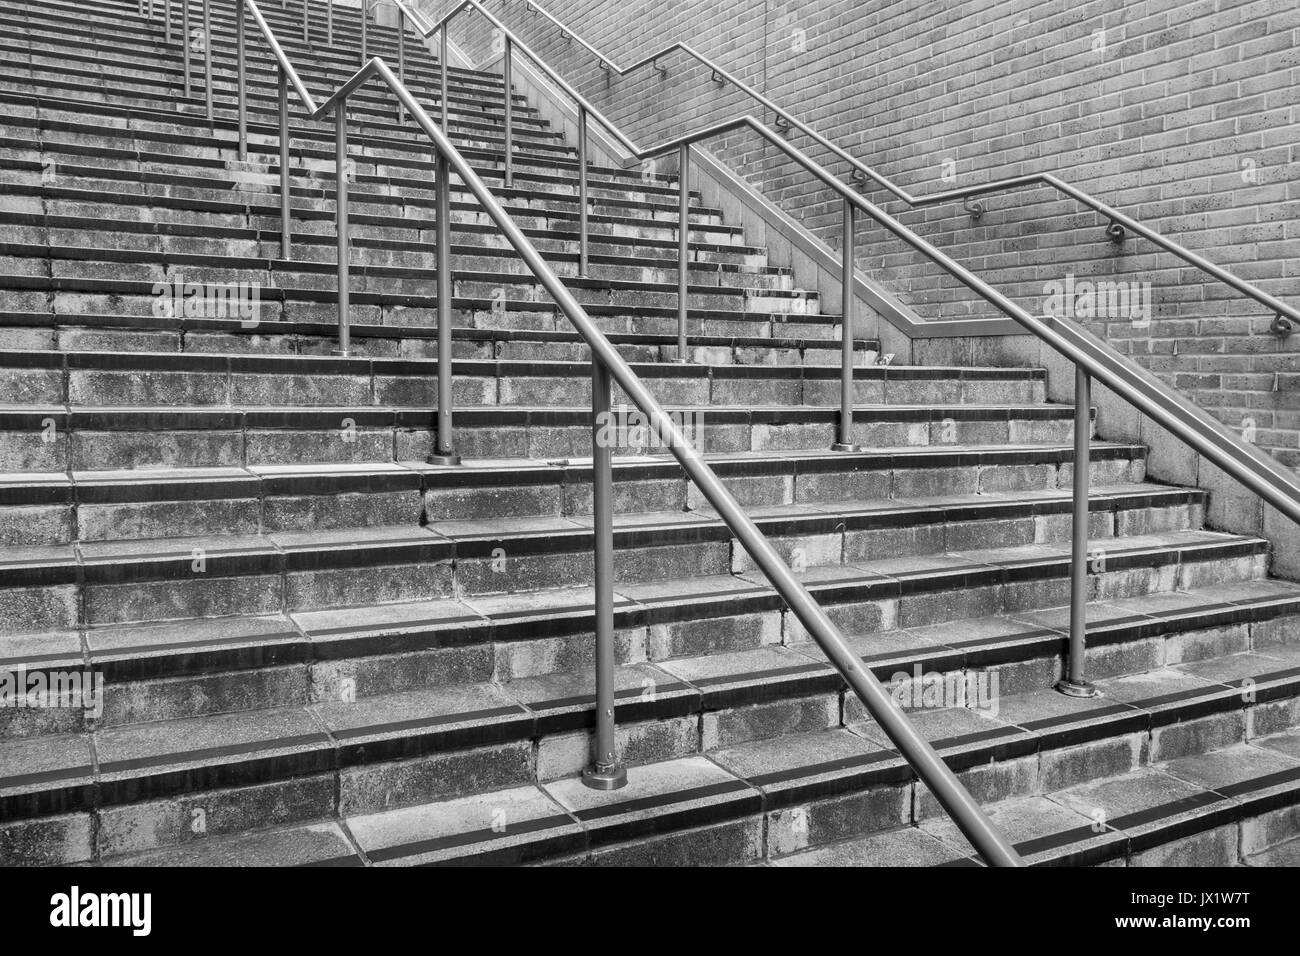 Concrete flight of steps with steel handrails - metaphor